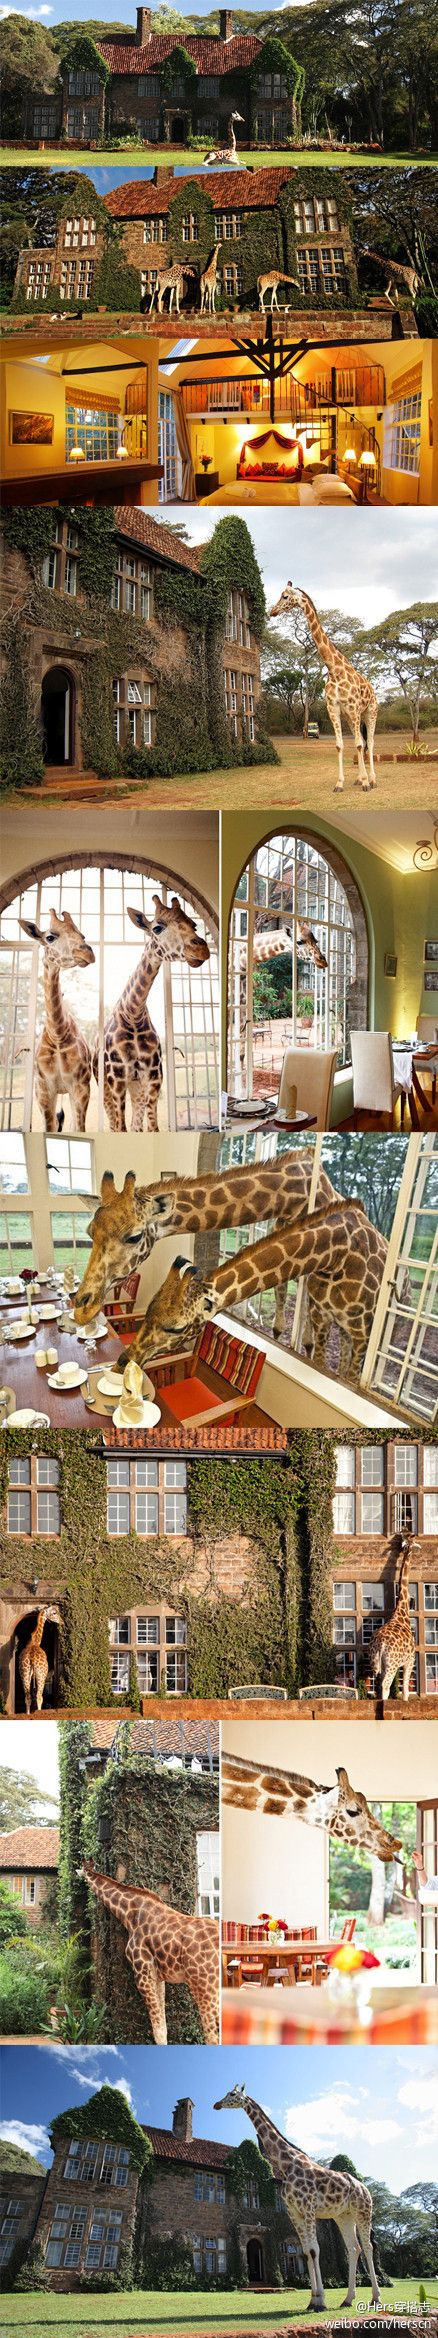 Giraffe Manor in Kenya - Where the giraffes stick their necks through the windows and eat dinner with you